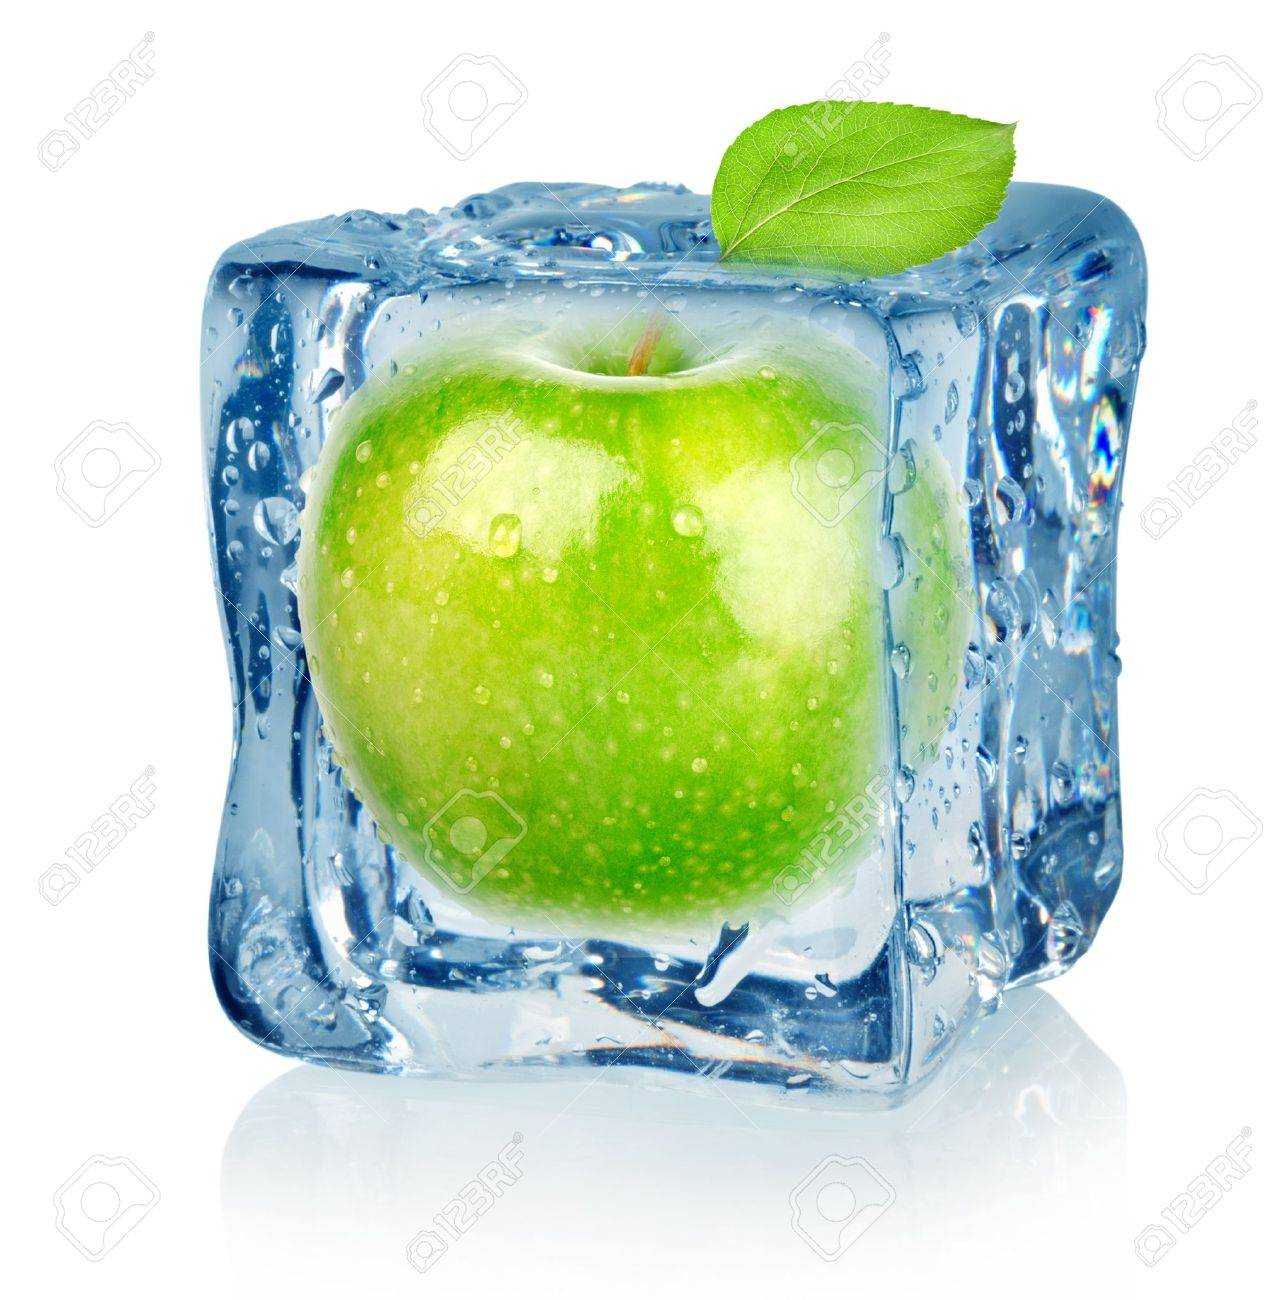 Ice cube and apple Stock Photo - 16347417